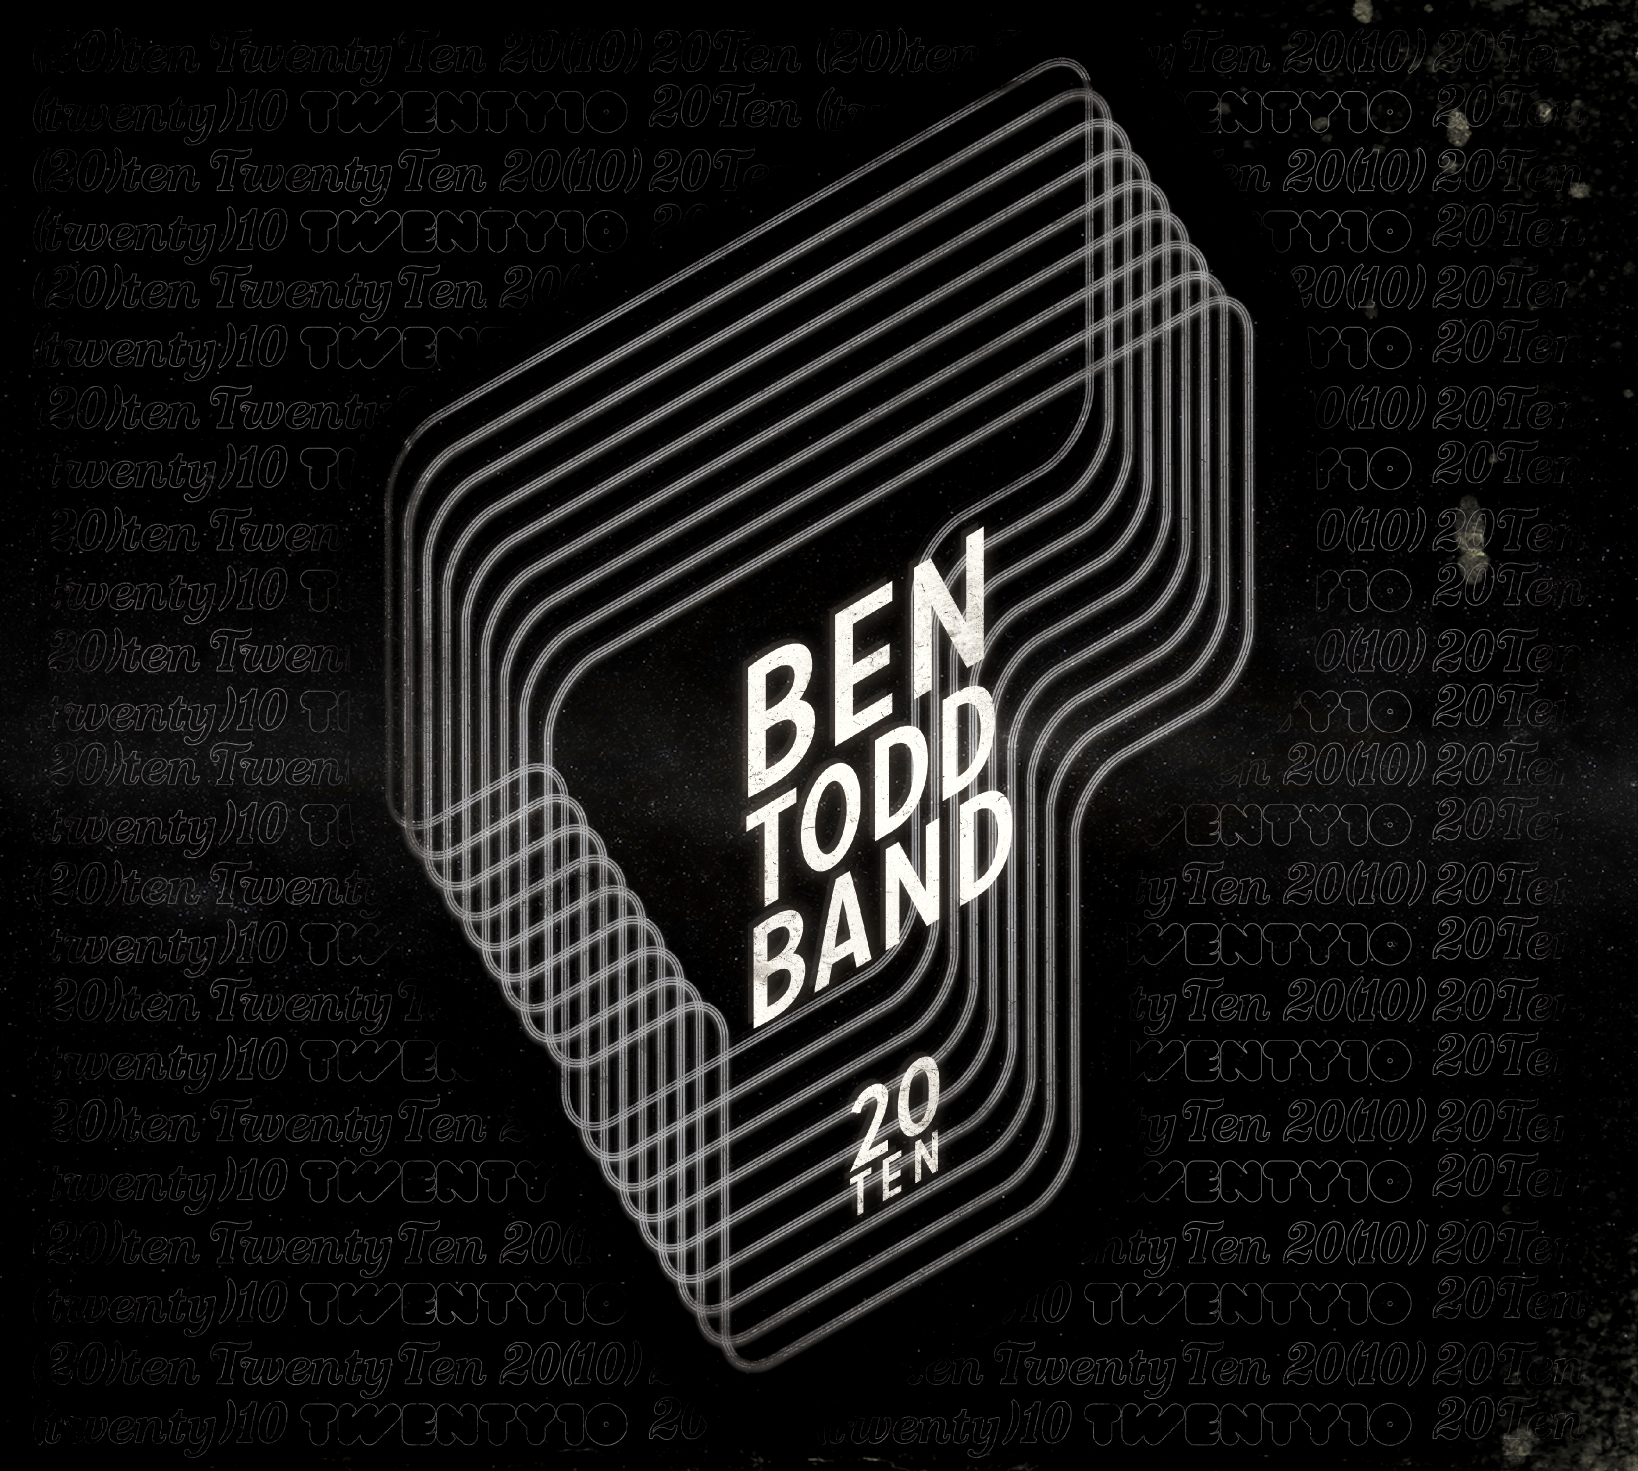 Click to find out more about the Ben Todd Band